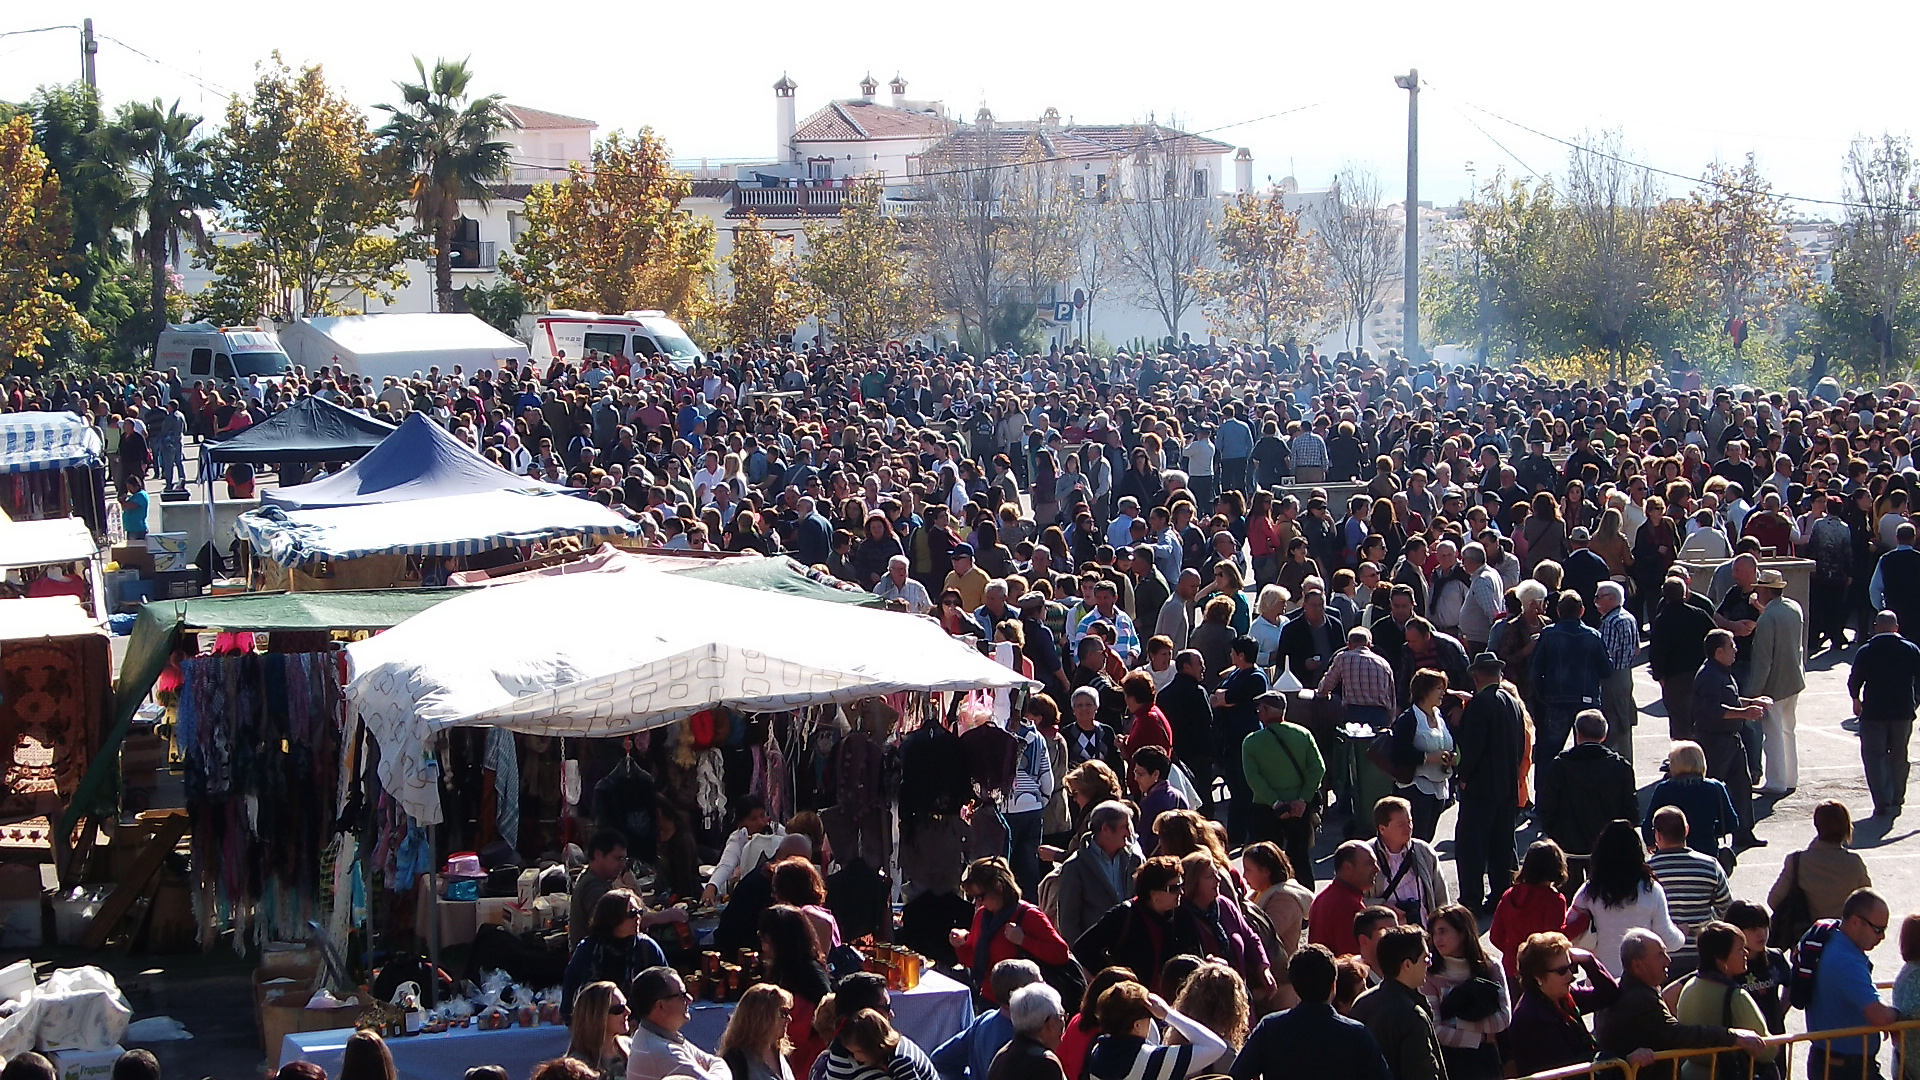 Celebration of fried breadcrumbs migas festival in torrox pueblo